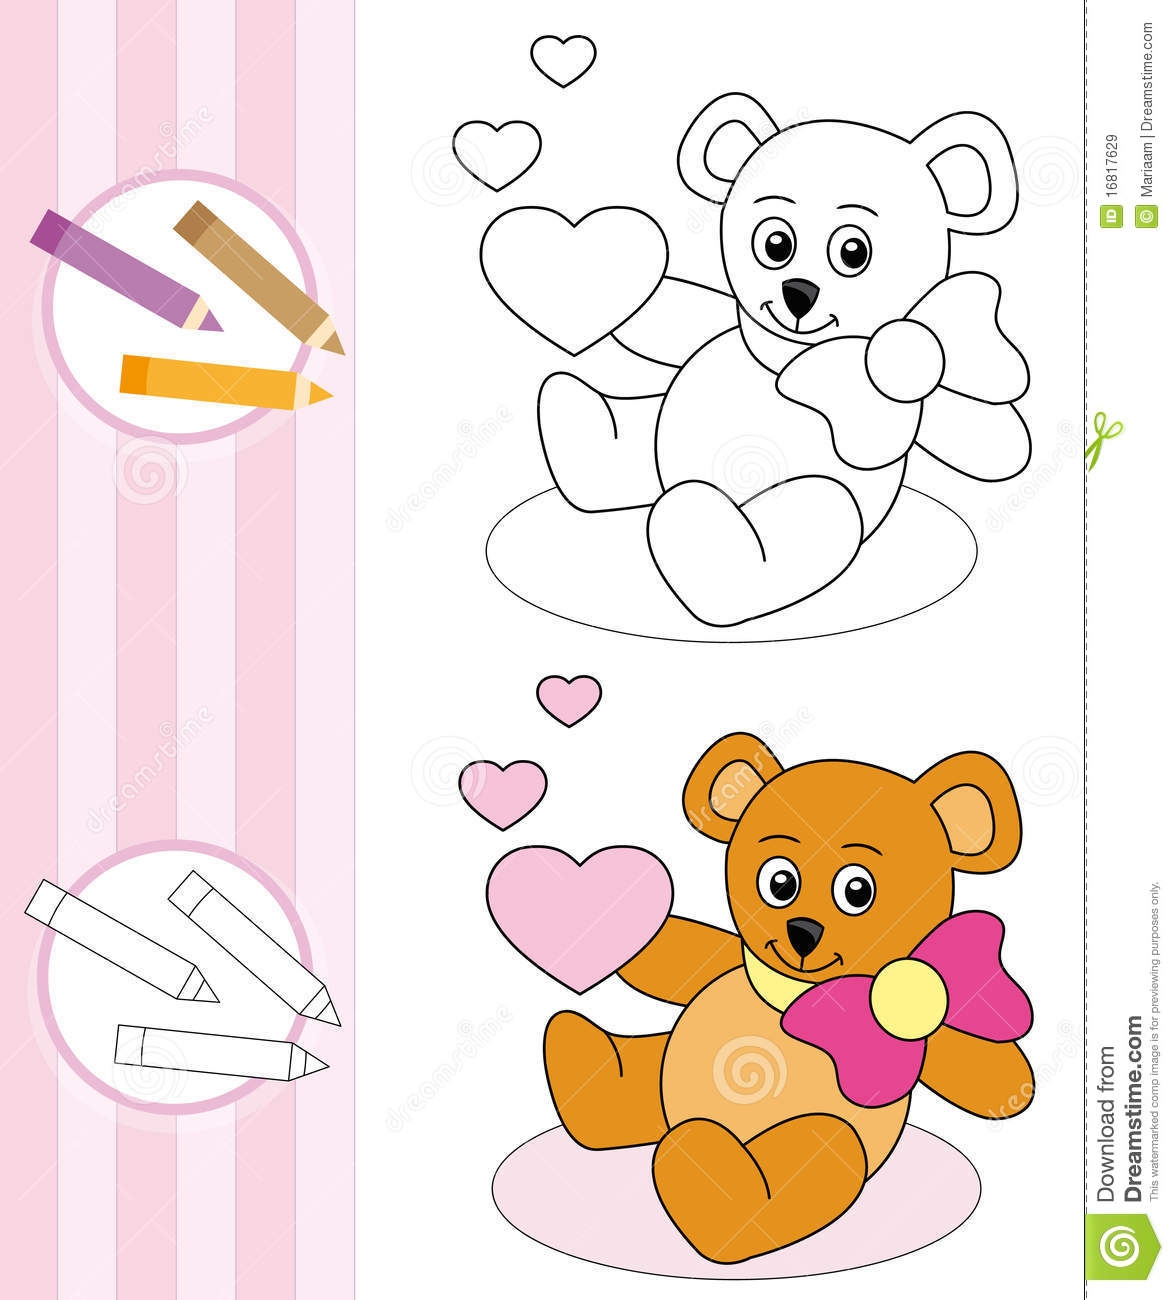 number 4 coloring page - royalty free stock images coloring book sketch teddy bear image